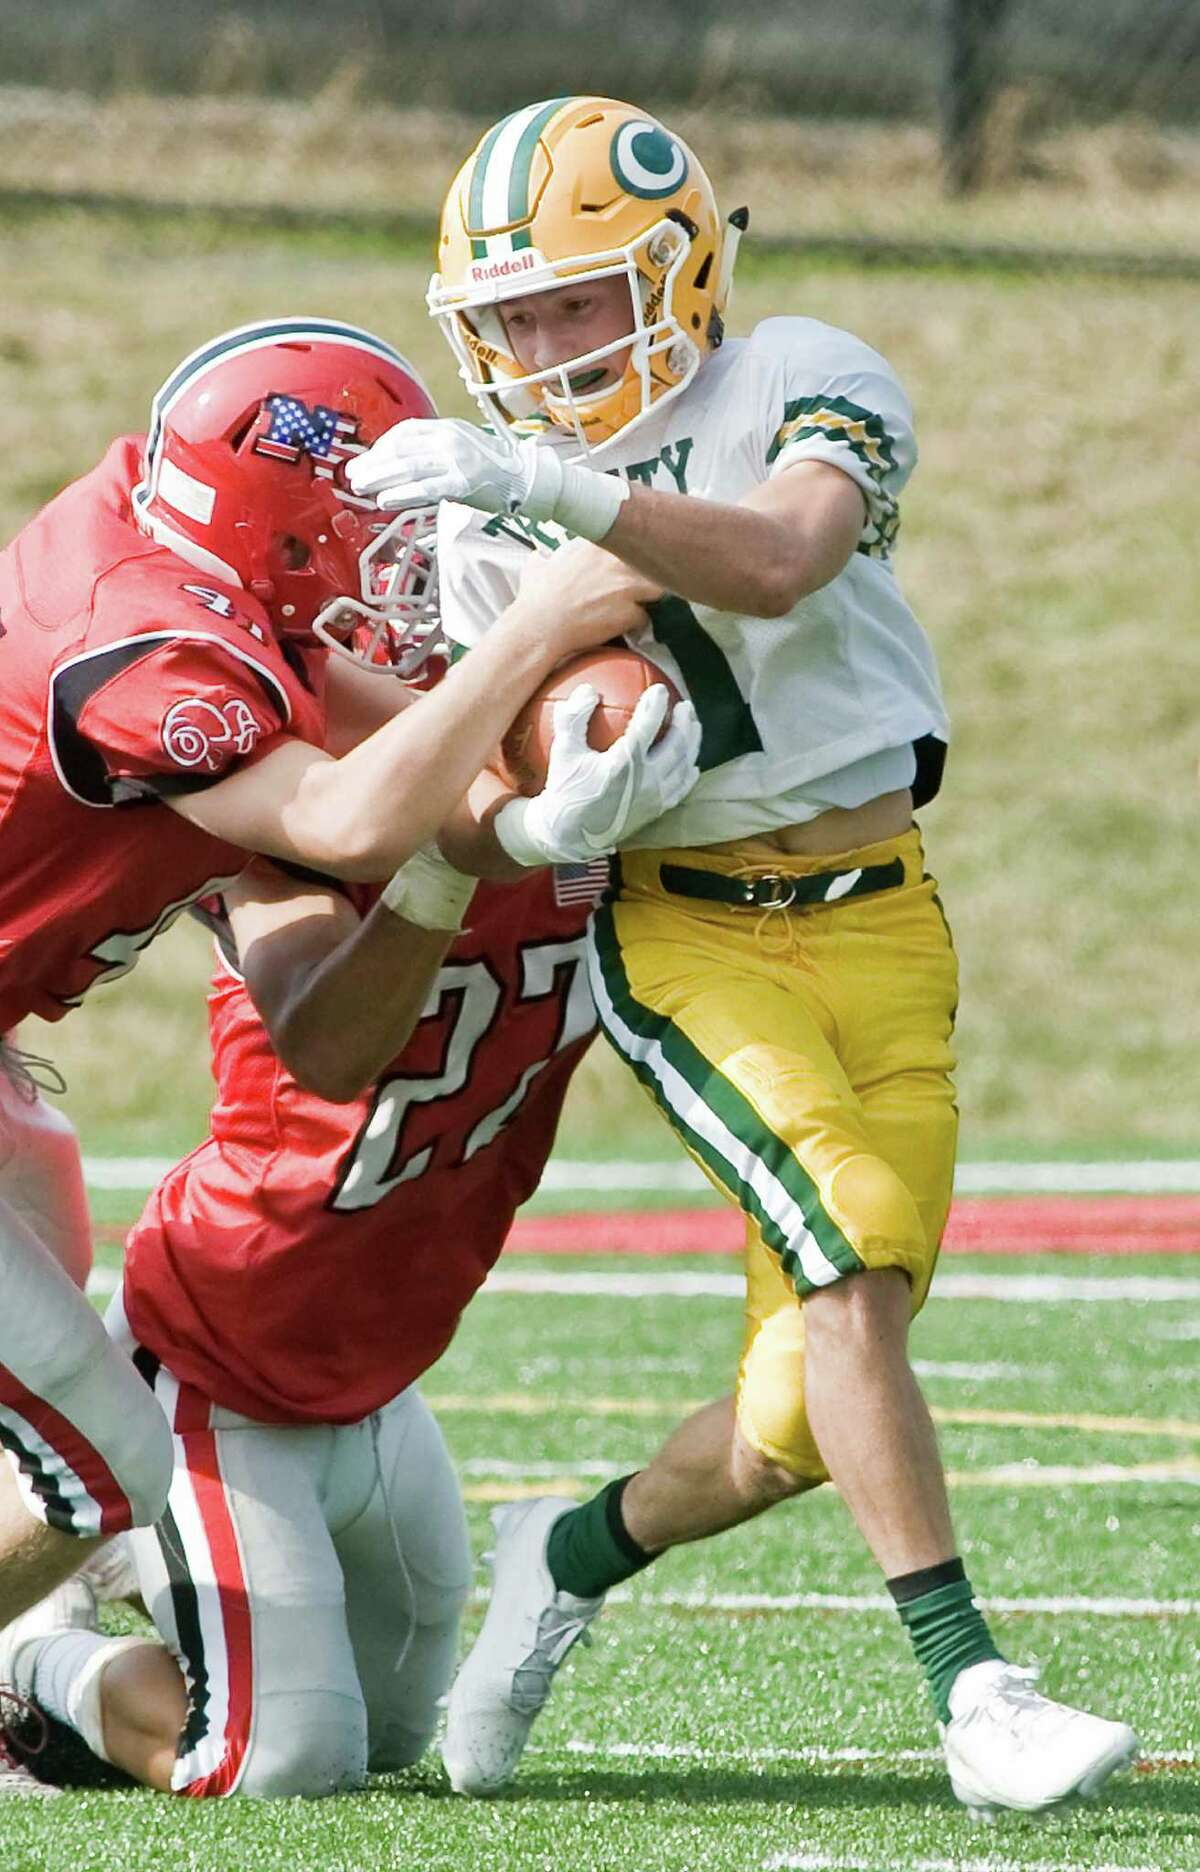 Trinity Catholic High School's Mikey Riddle fights off a tackle in a game against New Canaan High School, played at New Canaan. Saturday, Sept. 10, 2016